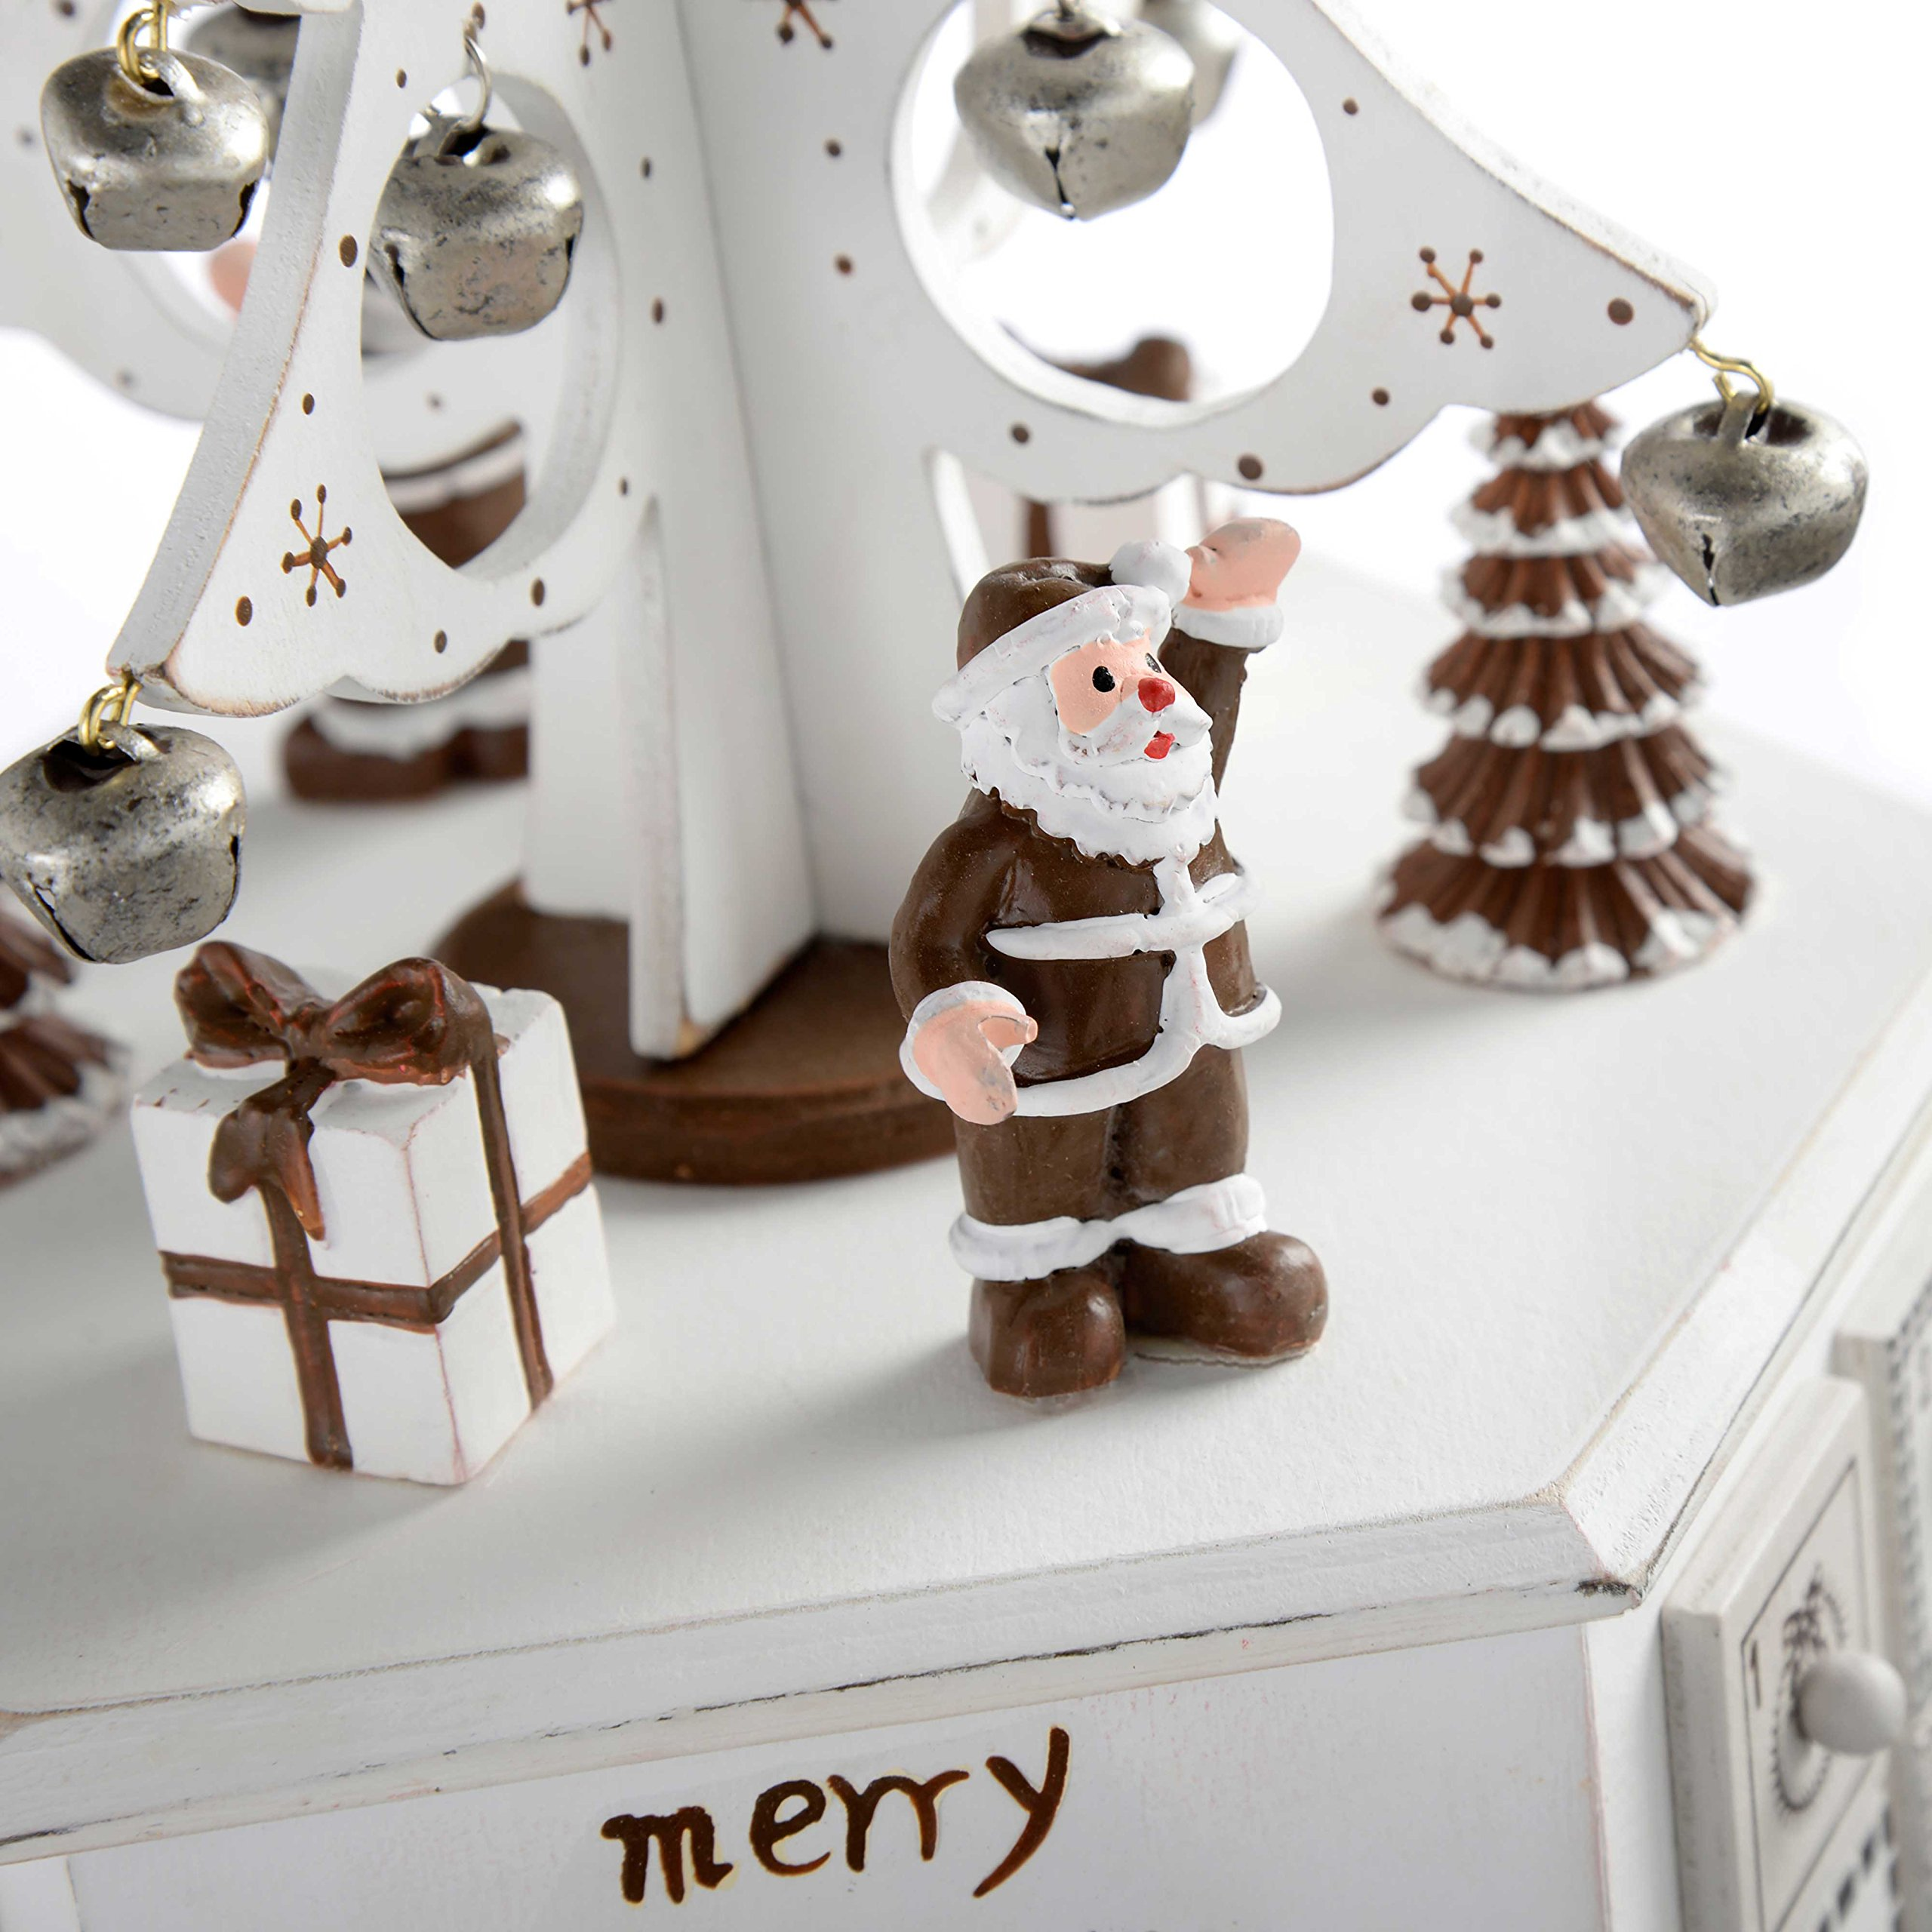 WeRChristmas Wooden Tree Advent Calendar Tower Christmas Decoration, 36 Cm - White by WeRChristmas (Image #4)